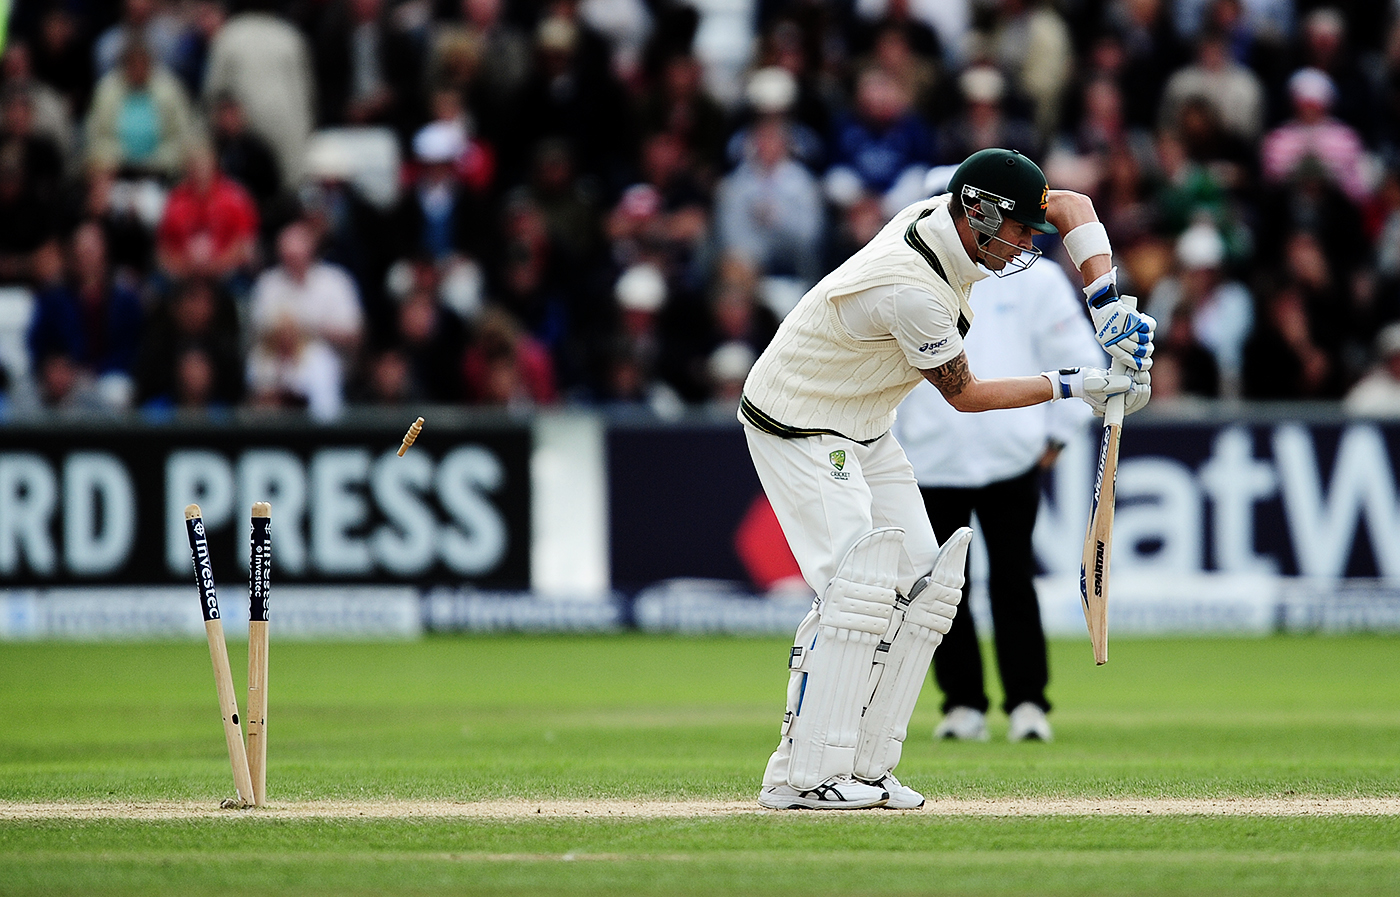 Michael Clarke featured pretty frequently in the dismissed column of our longlist